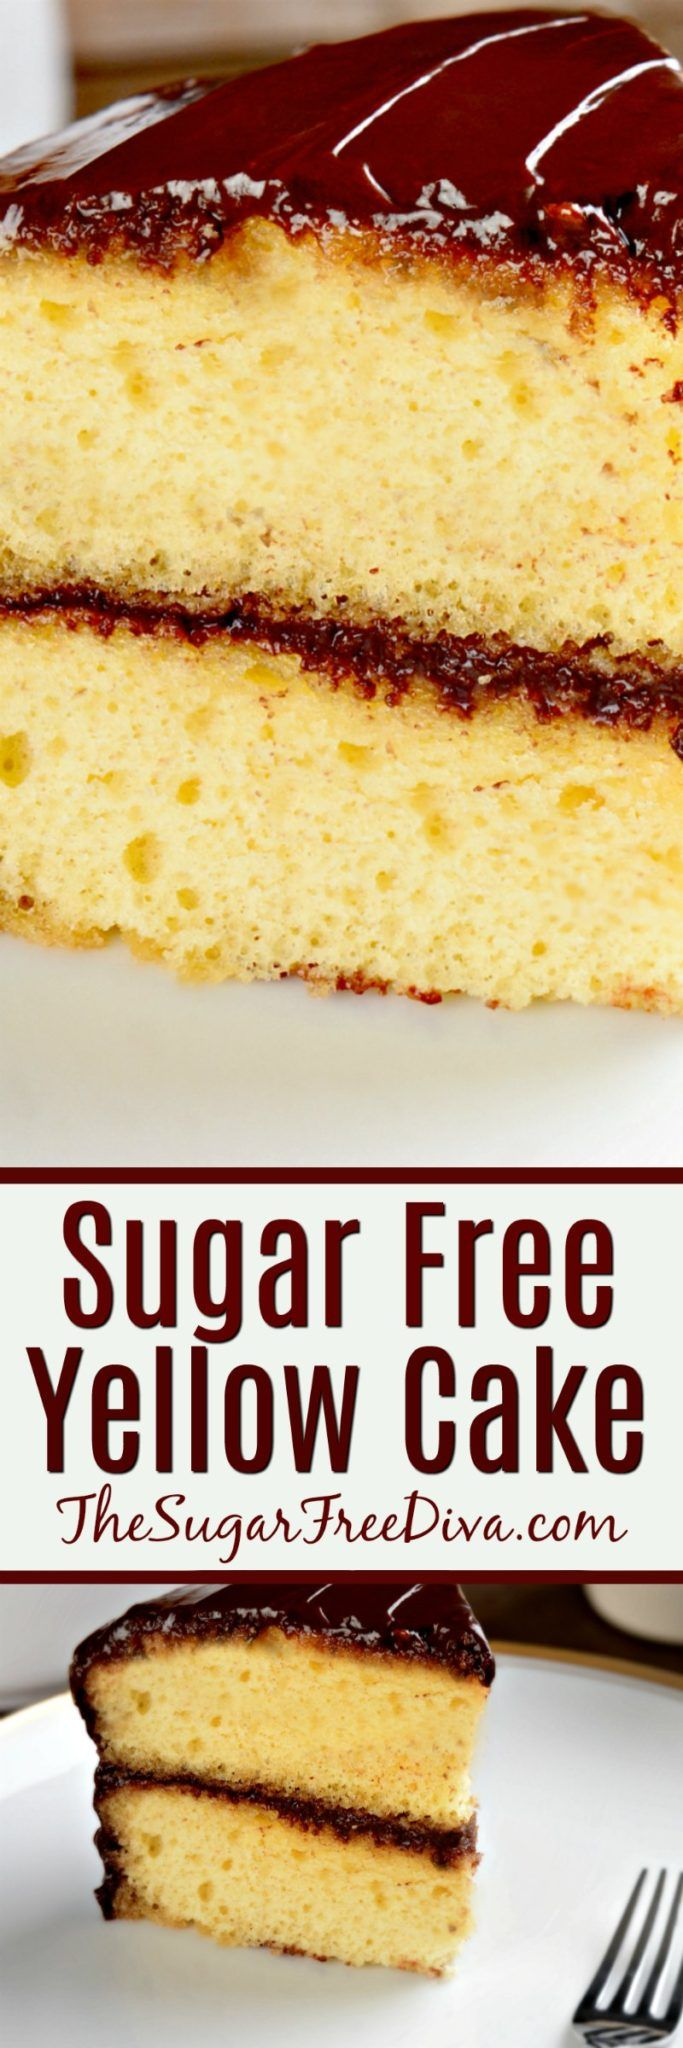 A Basic and Easy Sugar Free Yellow Cake Recipe